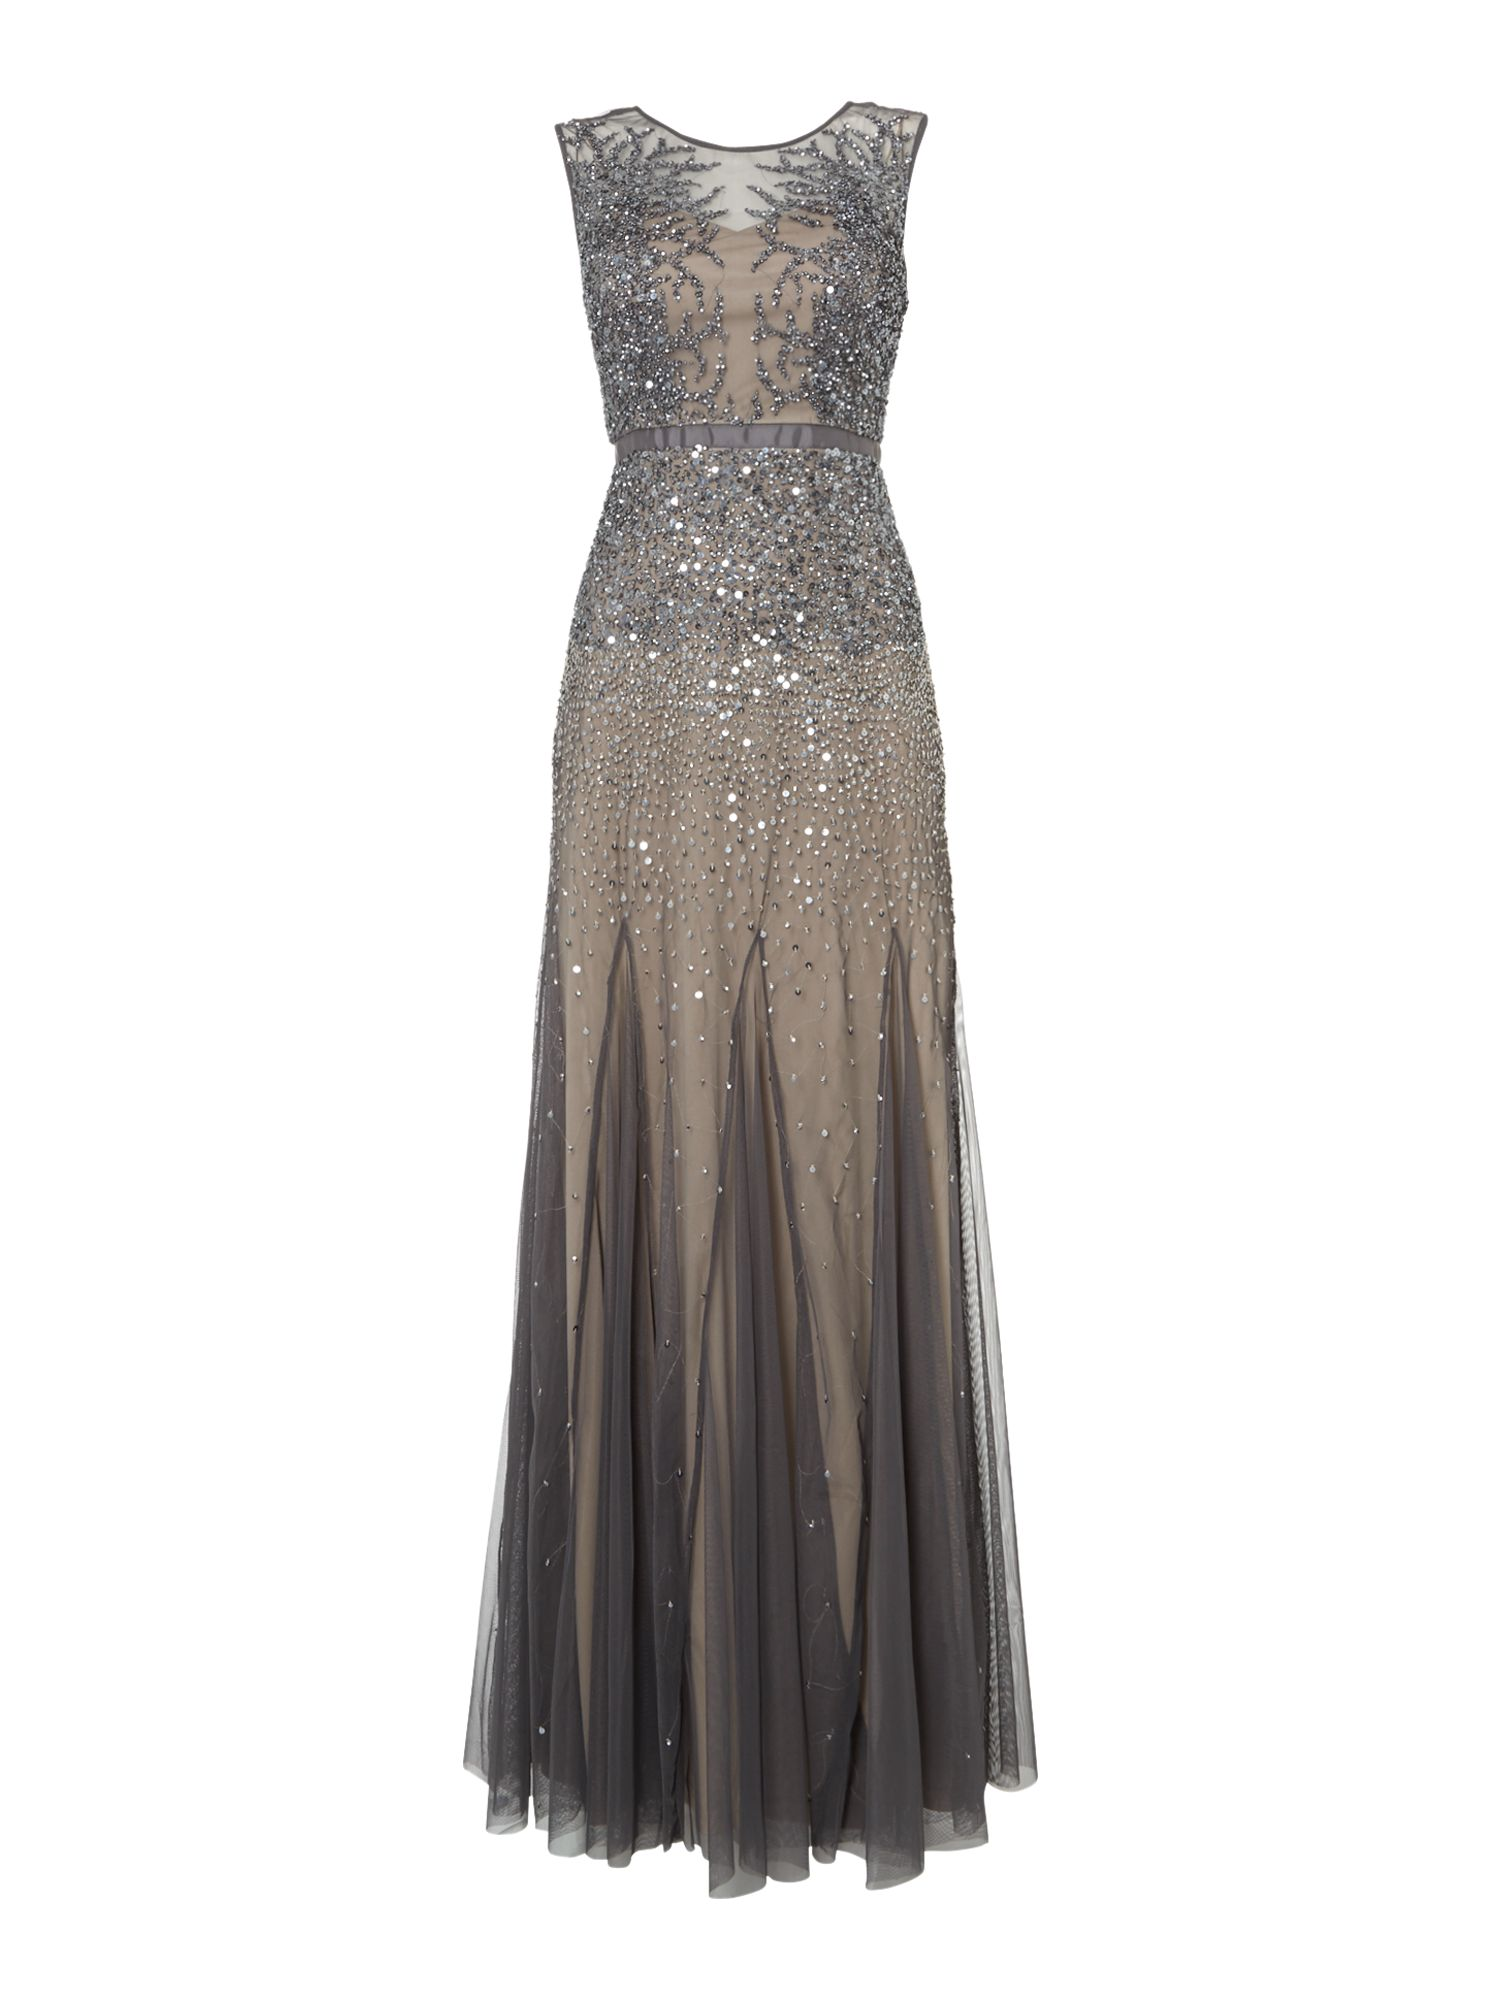 Adrianna Papell Sleeping beauty dress $290.00 AT vintagedancer.com